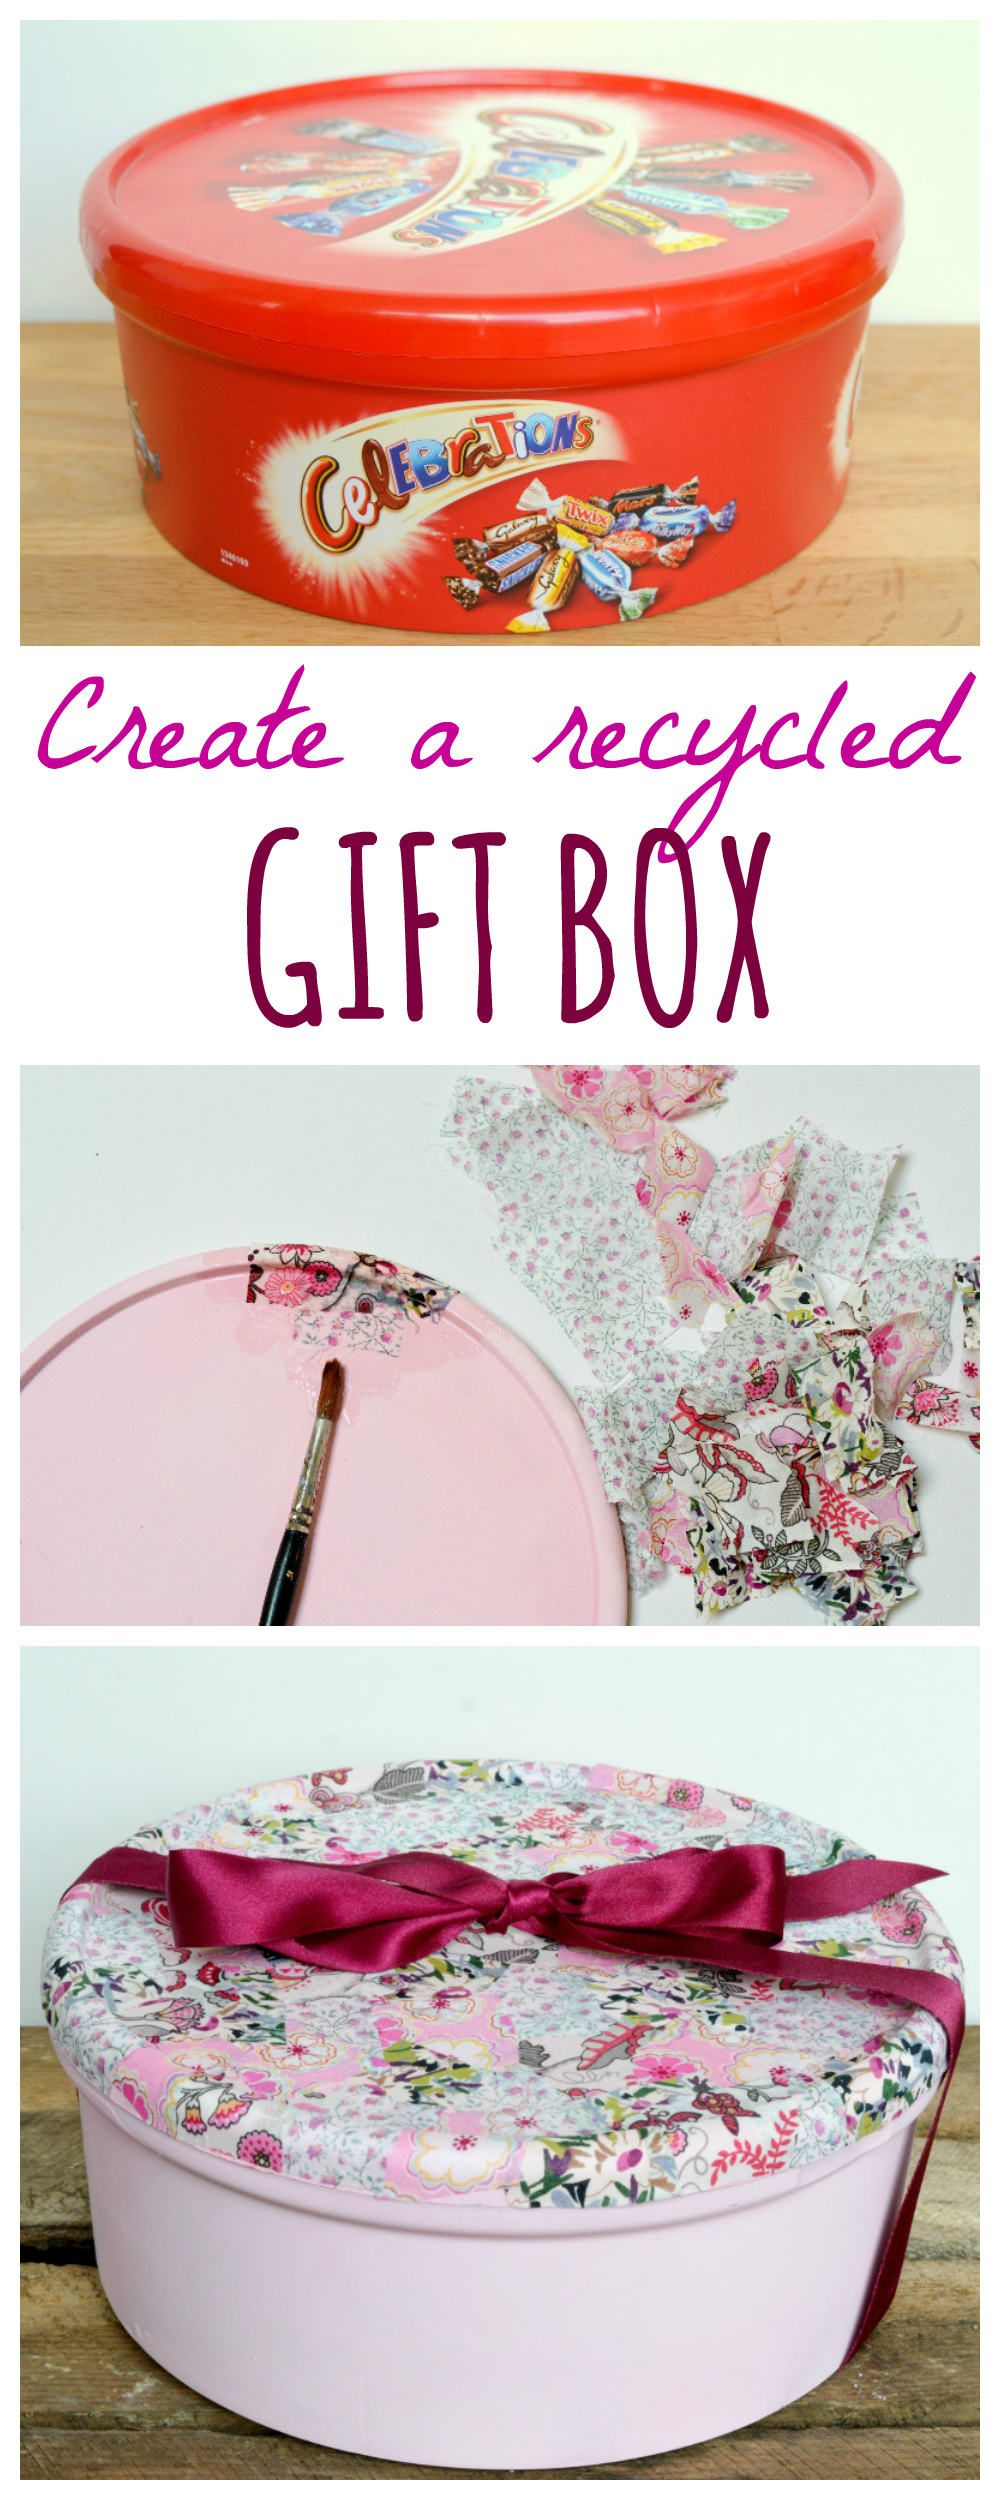 Recycle sweet tins into gift boxes #recycledcrafts